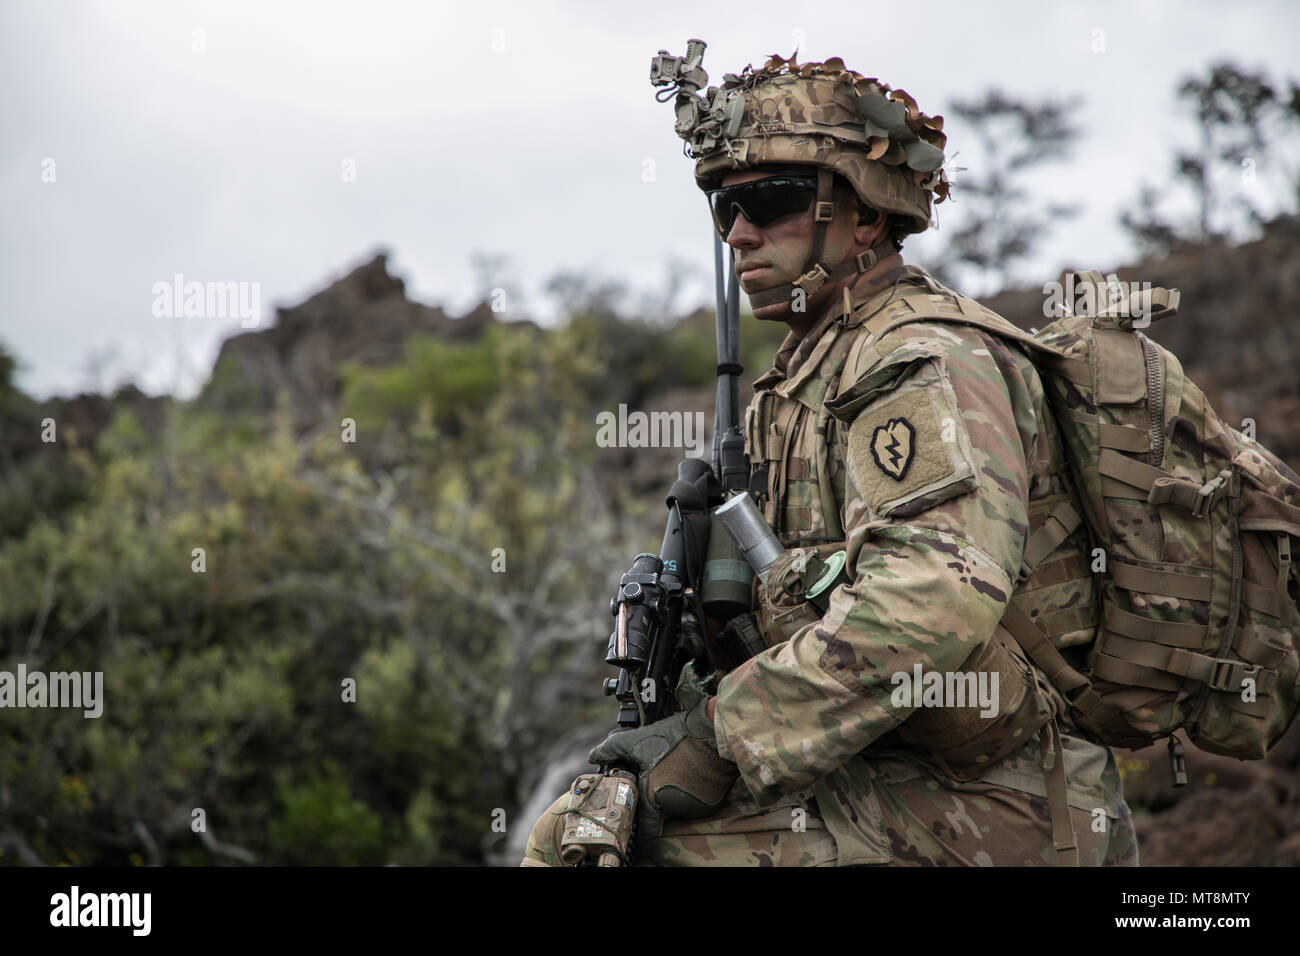 U.S. Army Trooper assigned to 2nd Squadron, 14th Calvary Regiment, 2nd Infantry Brigade Combat Team, 25th Infantry Division scans the battlefield during a Combined Arms Live Fire Exercise (CALFEX) at Pohakuloa Training Area, Hawaii, May 15, 2018. The CALFEX utilizes all the enablers available to the unit in order to increase interoperability, concentrate combat power and mass effects on the objective. (U.S. Army photo by 1st Lt. Ryan DeBooy) - Stock Image